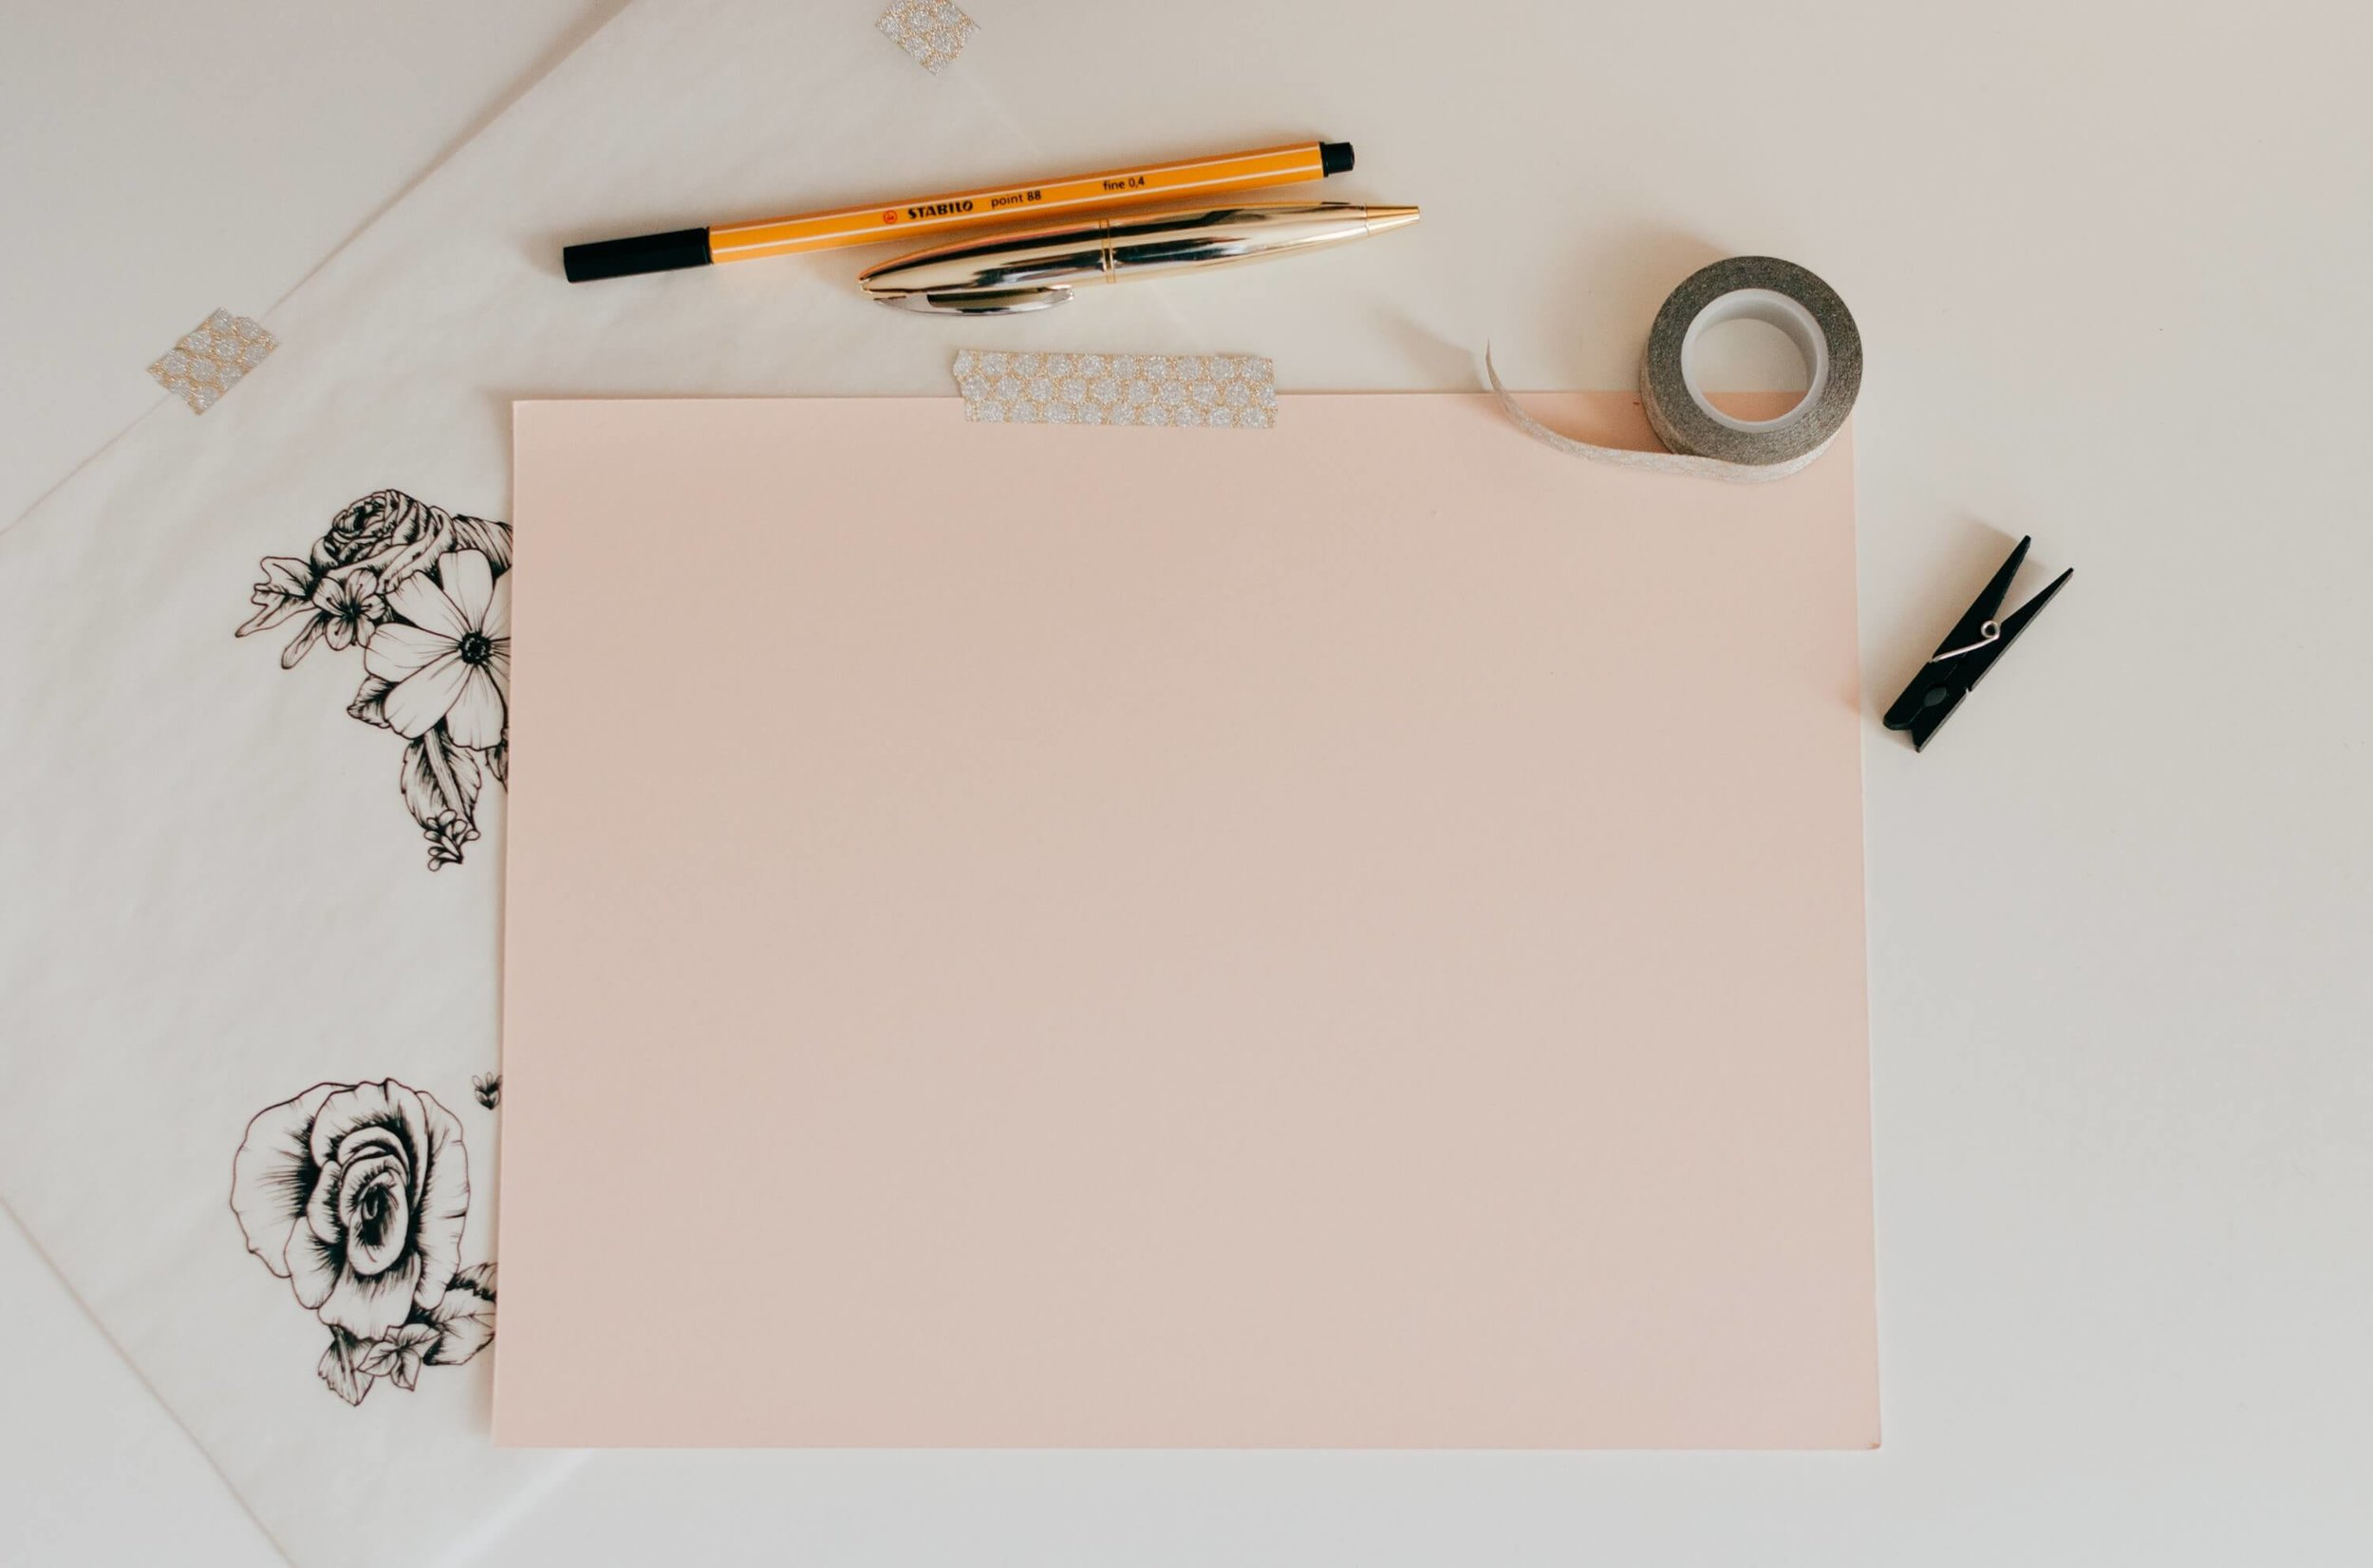 pink sheet of paper and office supplies